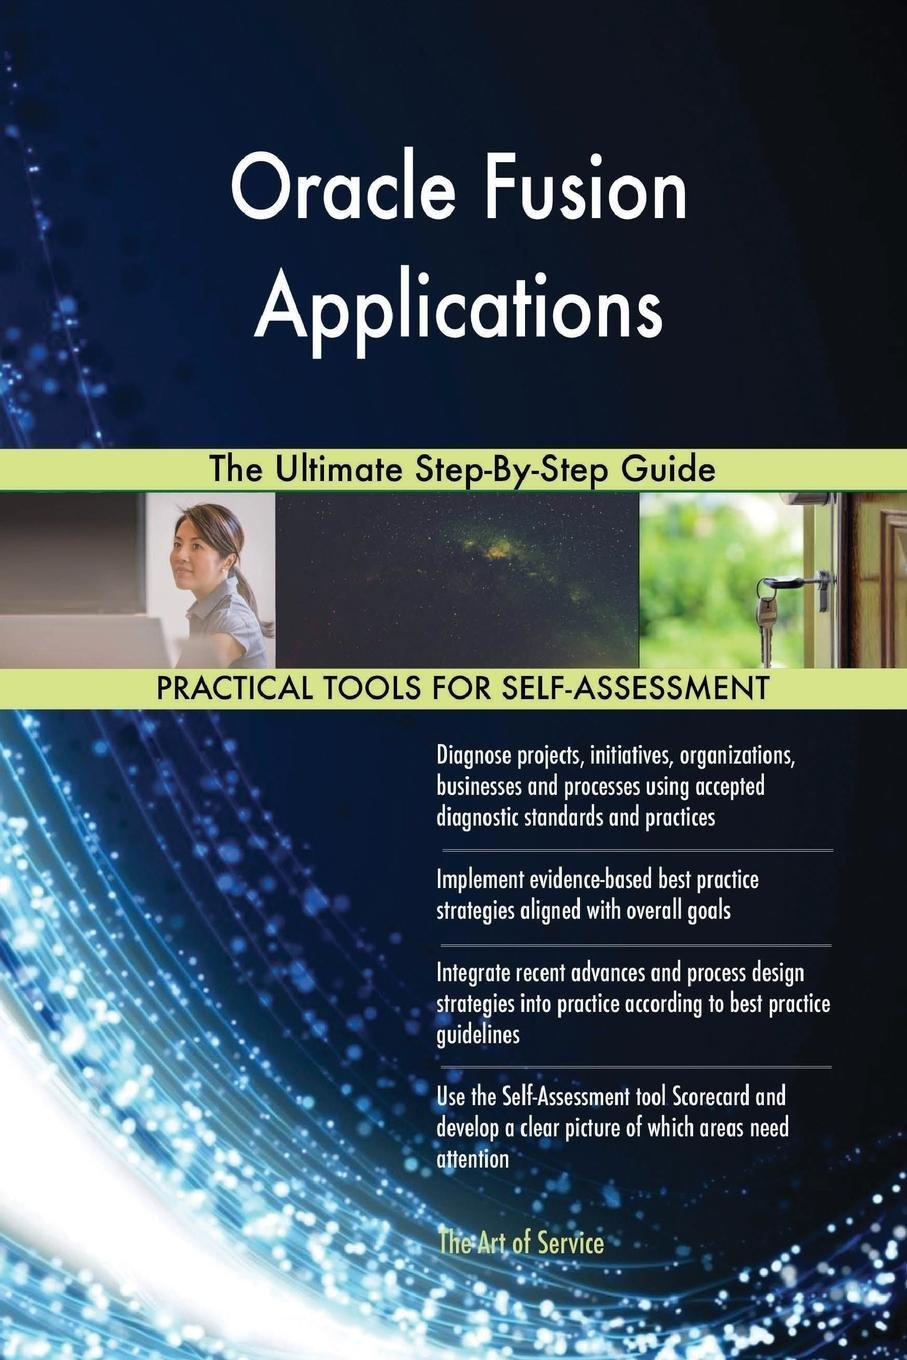 Oracle Fusion Applications the Ultimate Step-By-Step Guide